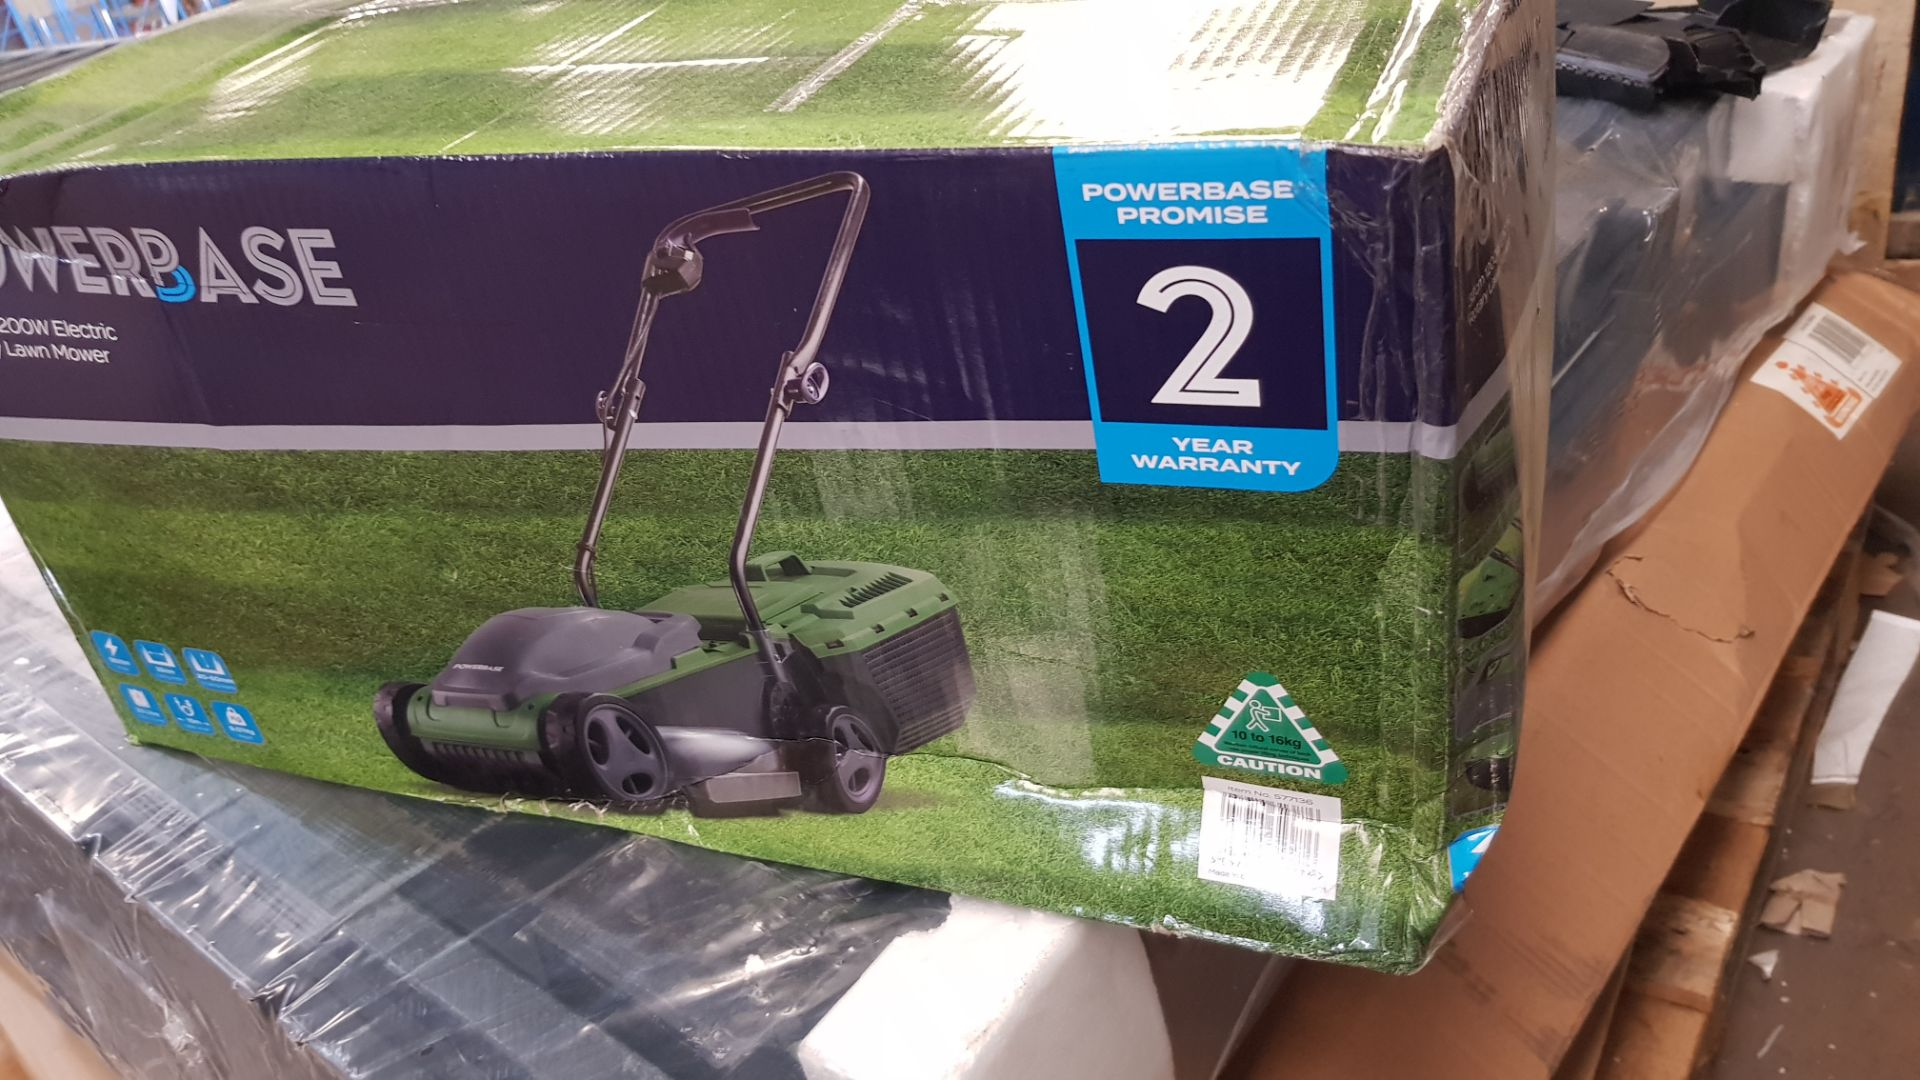 (P7) 1x Sovereign 32cm 1200W Electric Rotary Lawn Mower RRP £50. New, Sealed Unit With Very Slight - Image 4 of 5